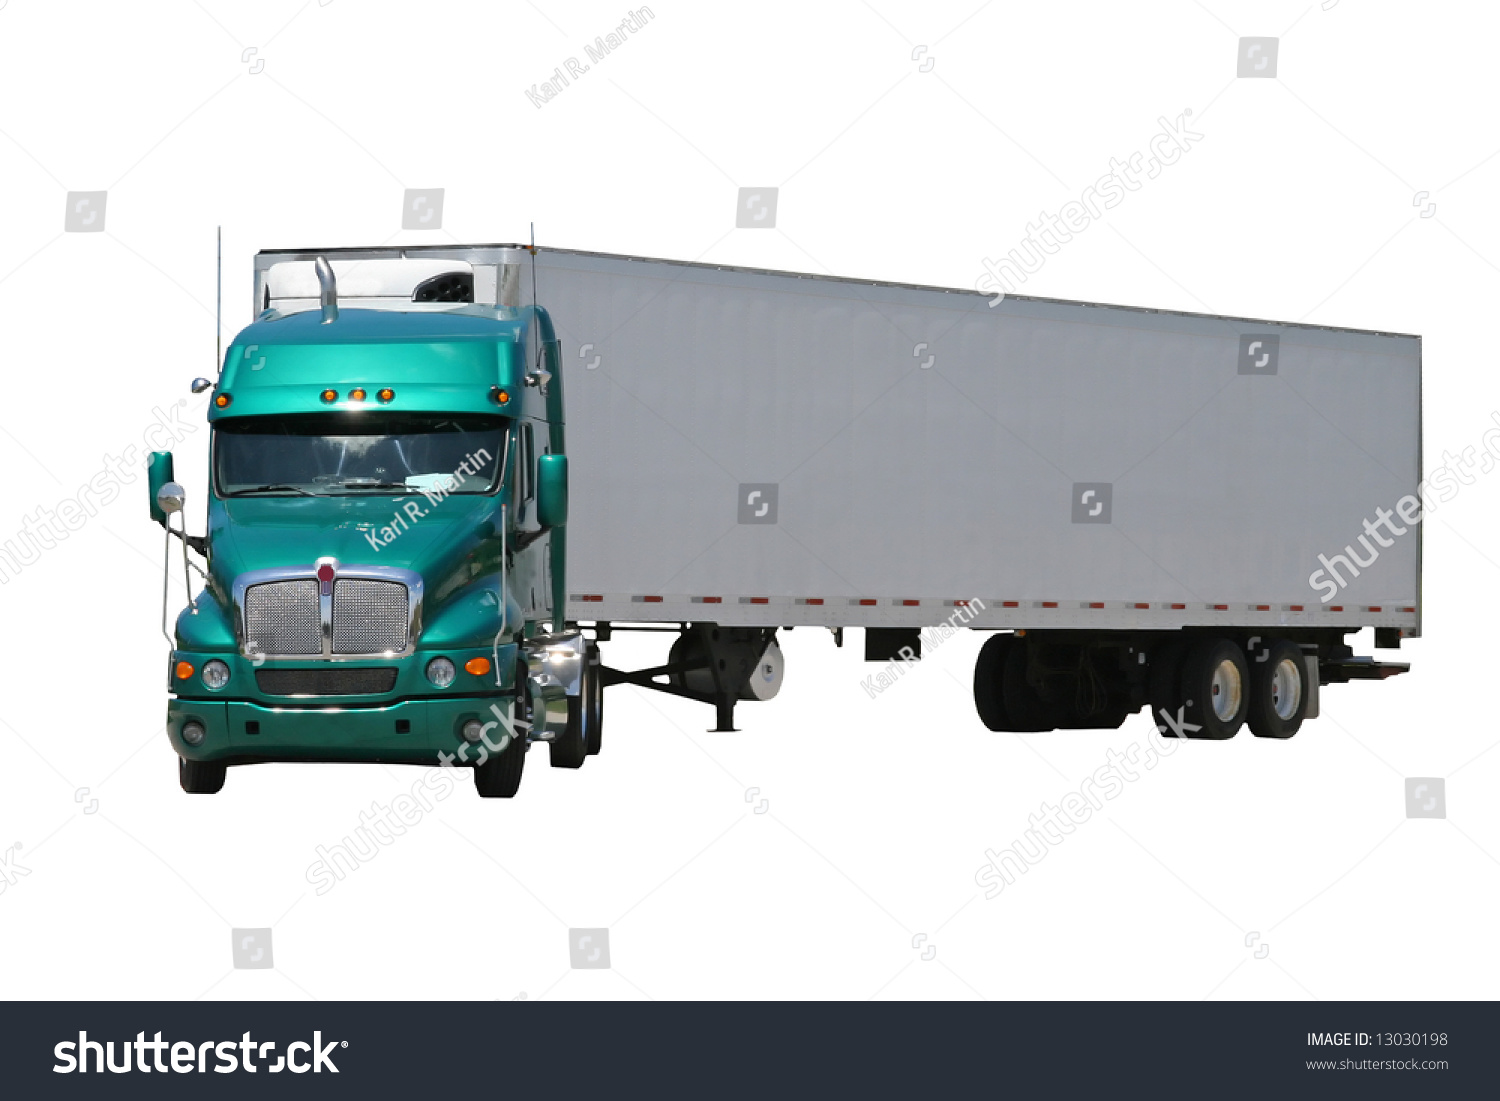 Tractor Trailer Stock : Isolated green semi tractor trailer turned stock photo